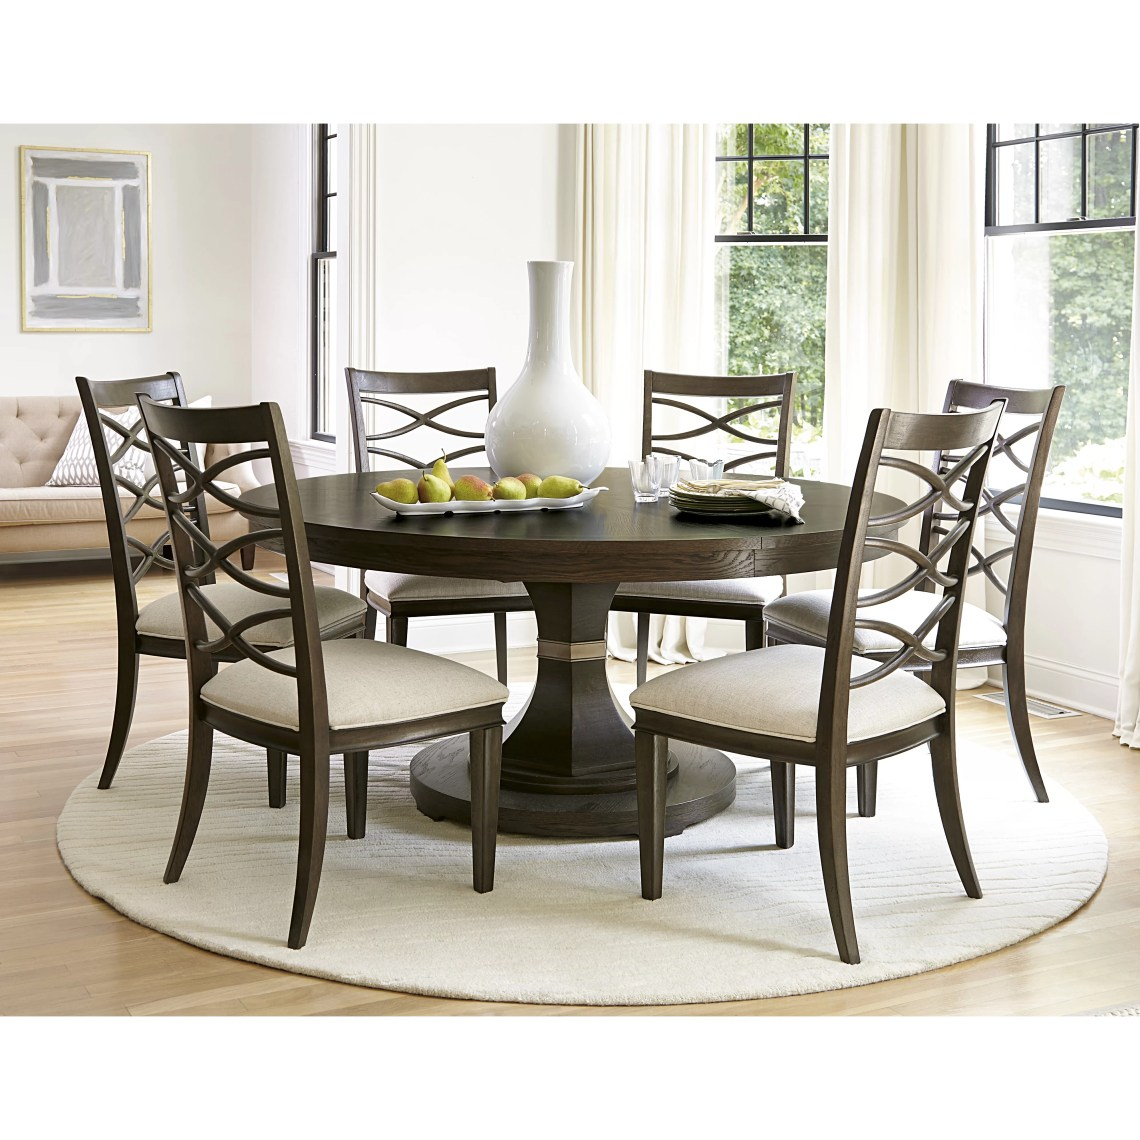 Image Result For Pier Dining Room Tables And Chairs